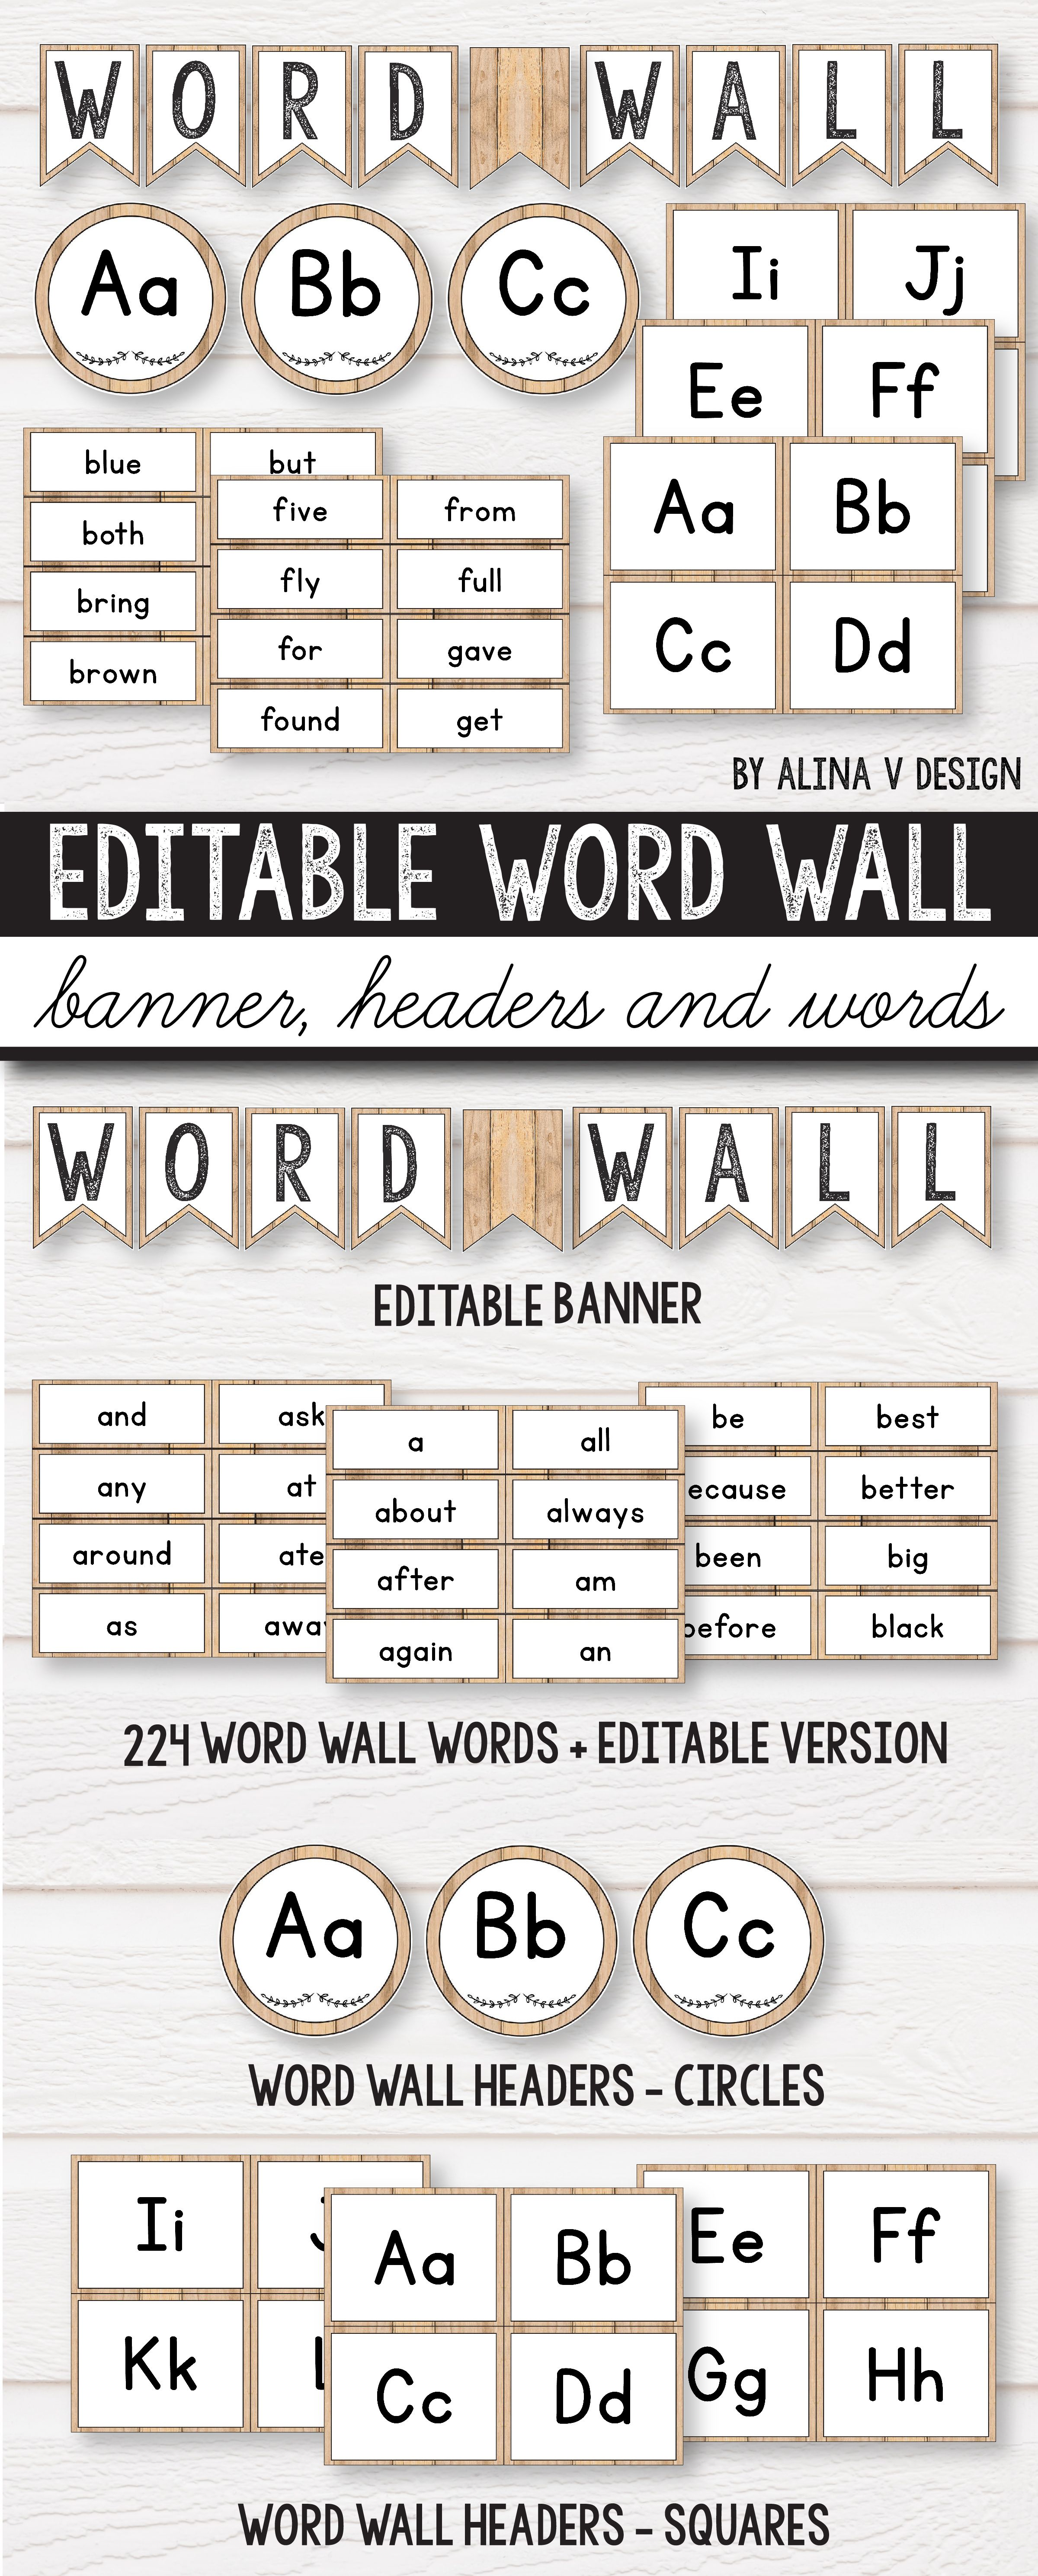 image about Word Wall Printable referred to as Editable Term Wall Letters Farmhouse Clroom Decor